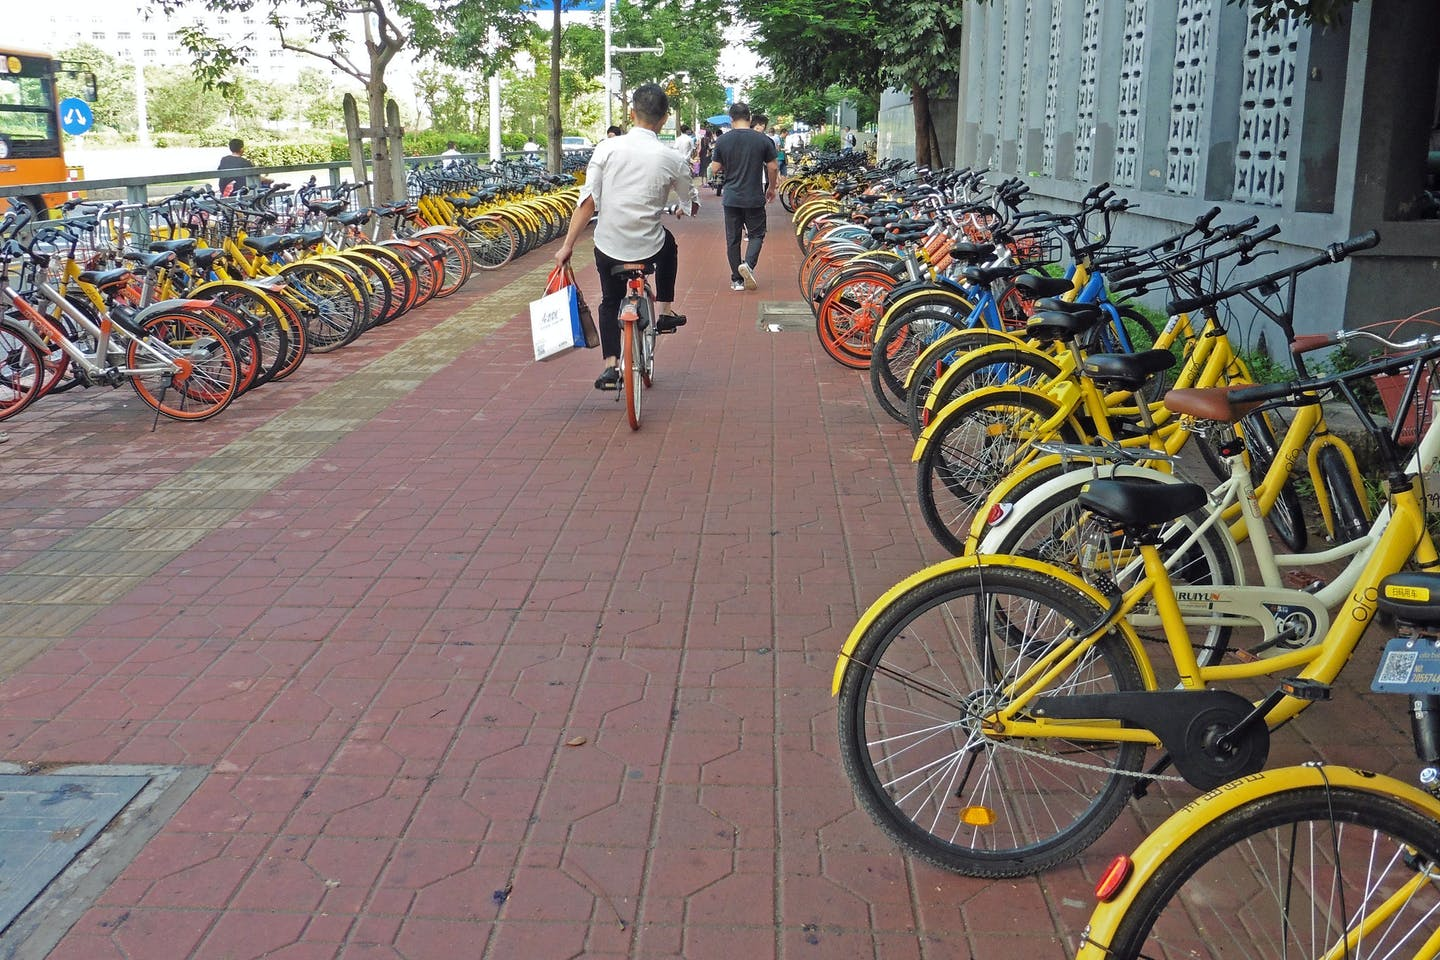 Bicycles belonging to a ride-sharing programme line a street in China